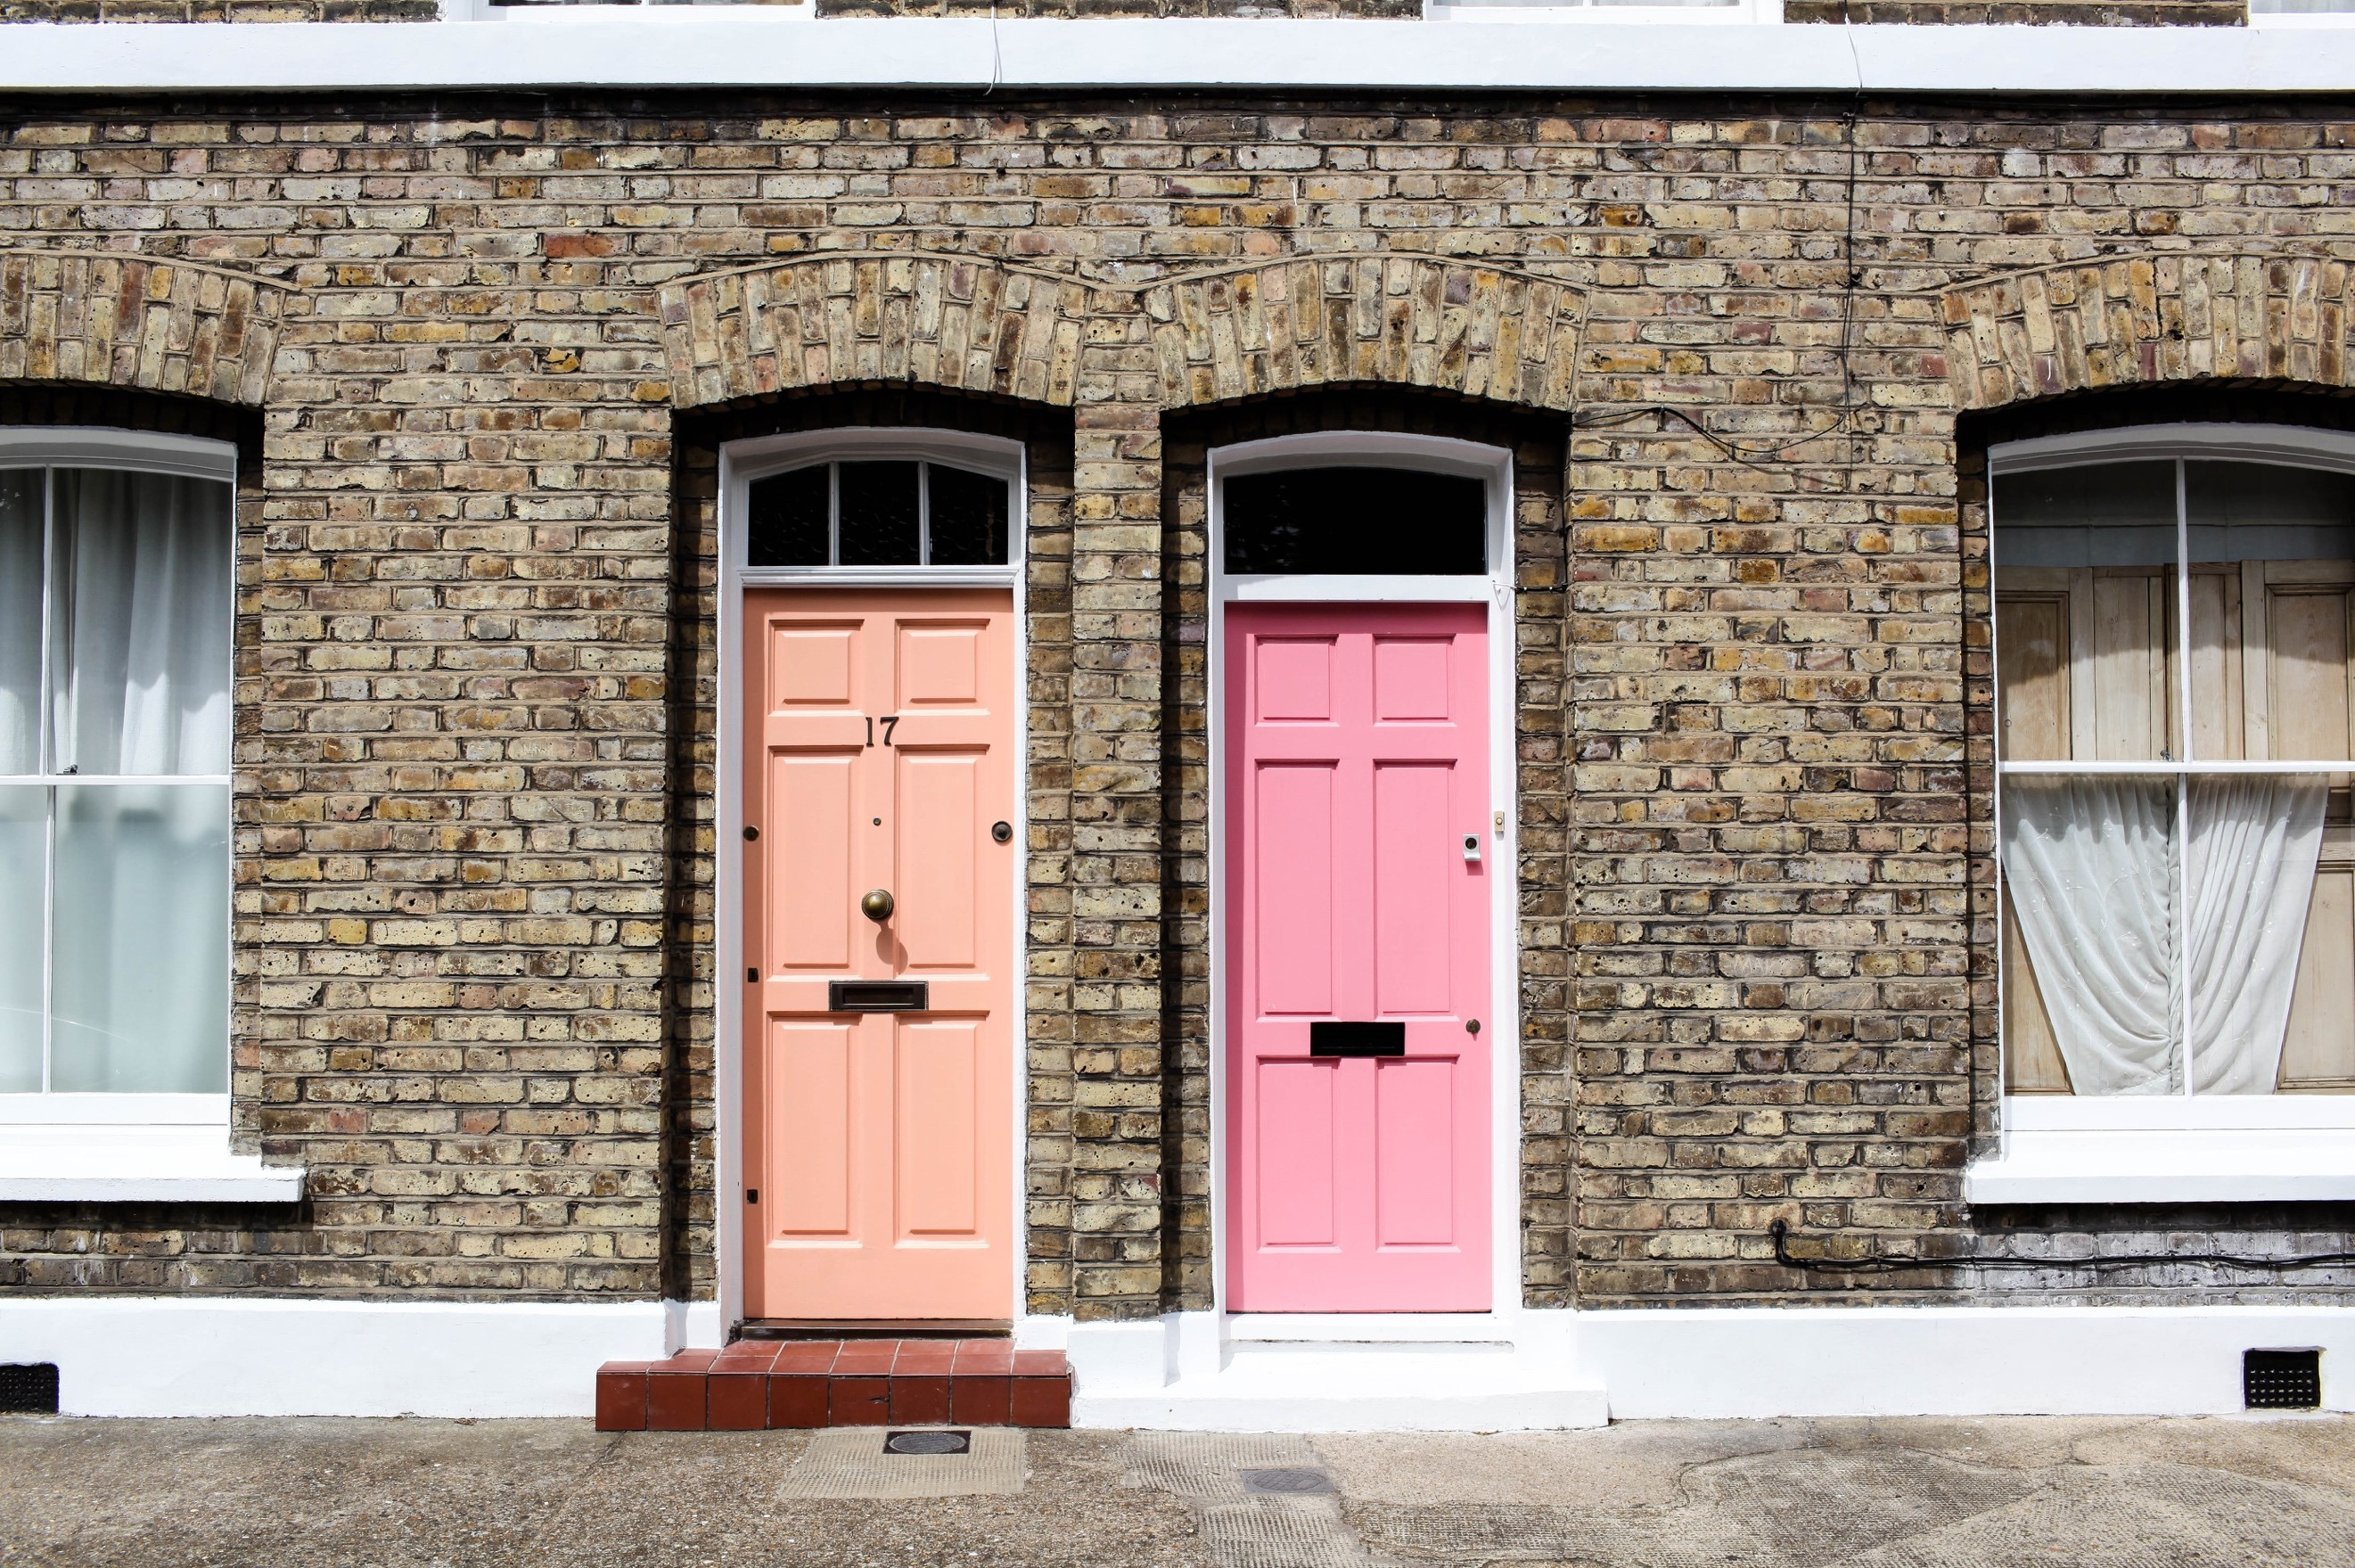 New regulations for houses in multiple occupation (HMO)